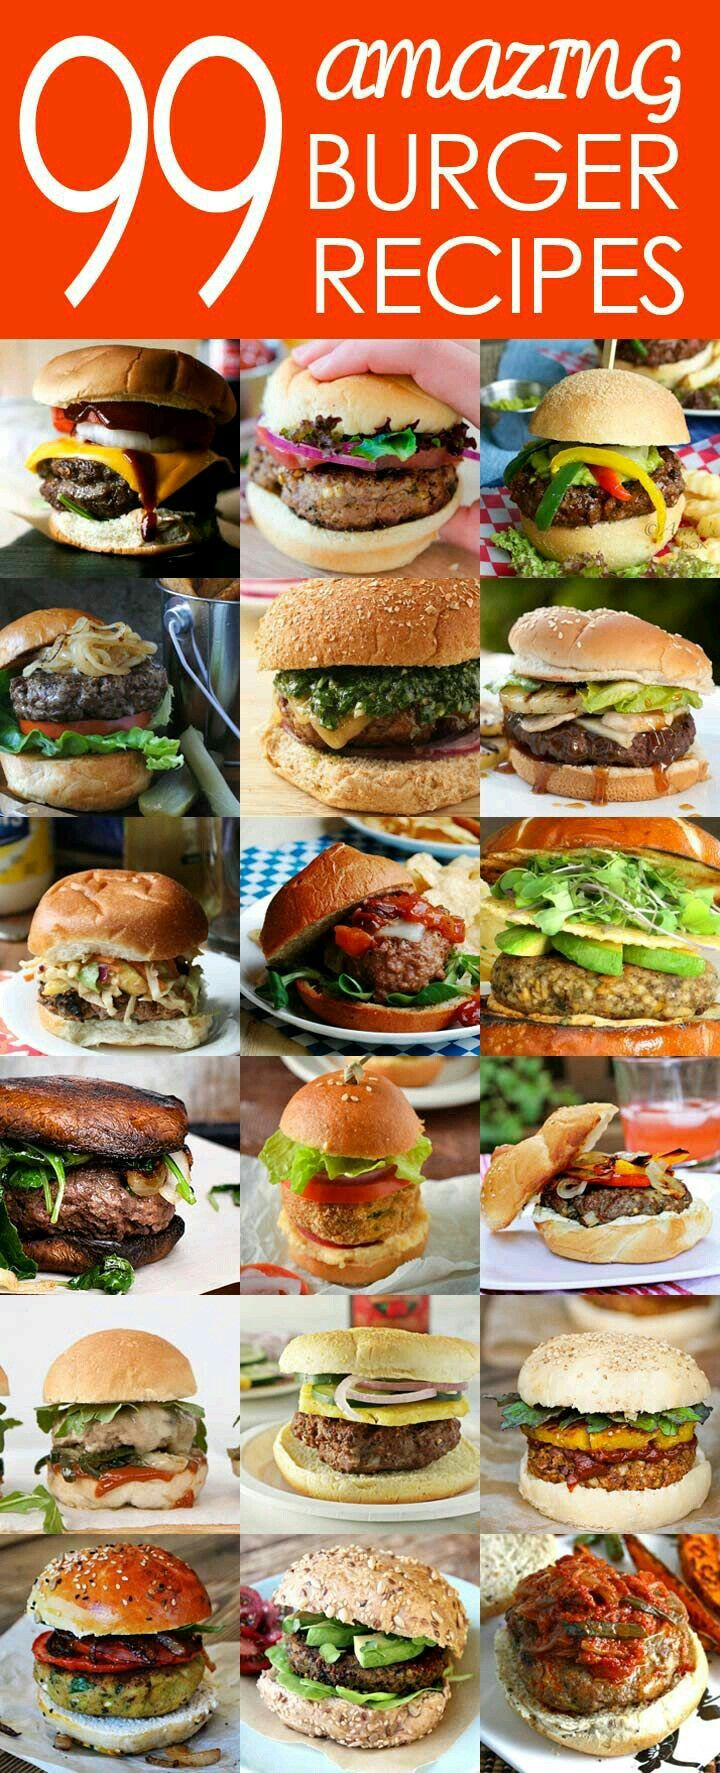 50 best Burger ❤ images on Pinterest | Beverage, Cook and Creative ...